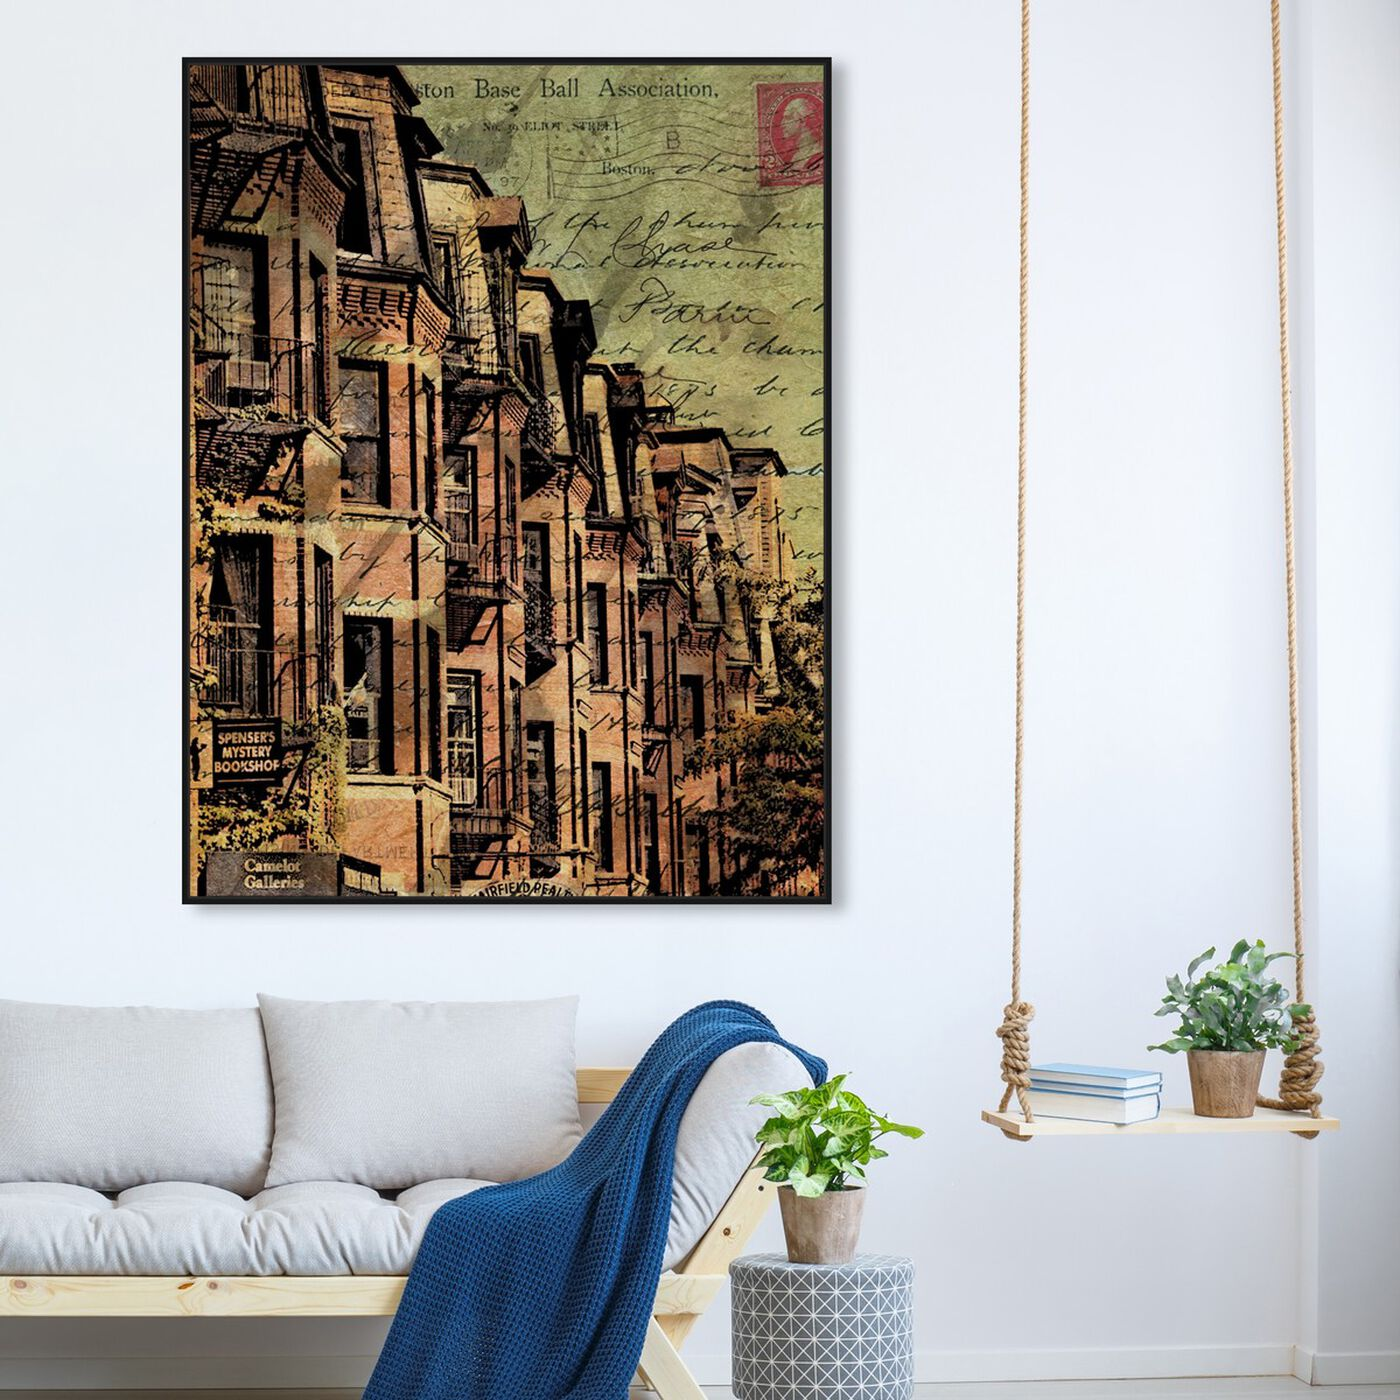 Hanging view of Boston Brownstone featuring cities and skylines and united states cities art.